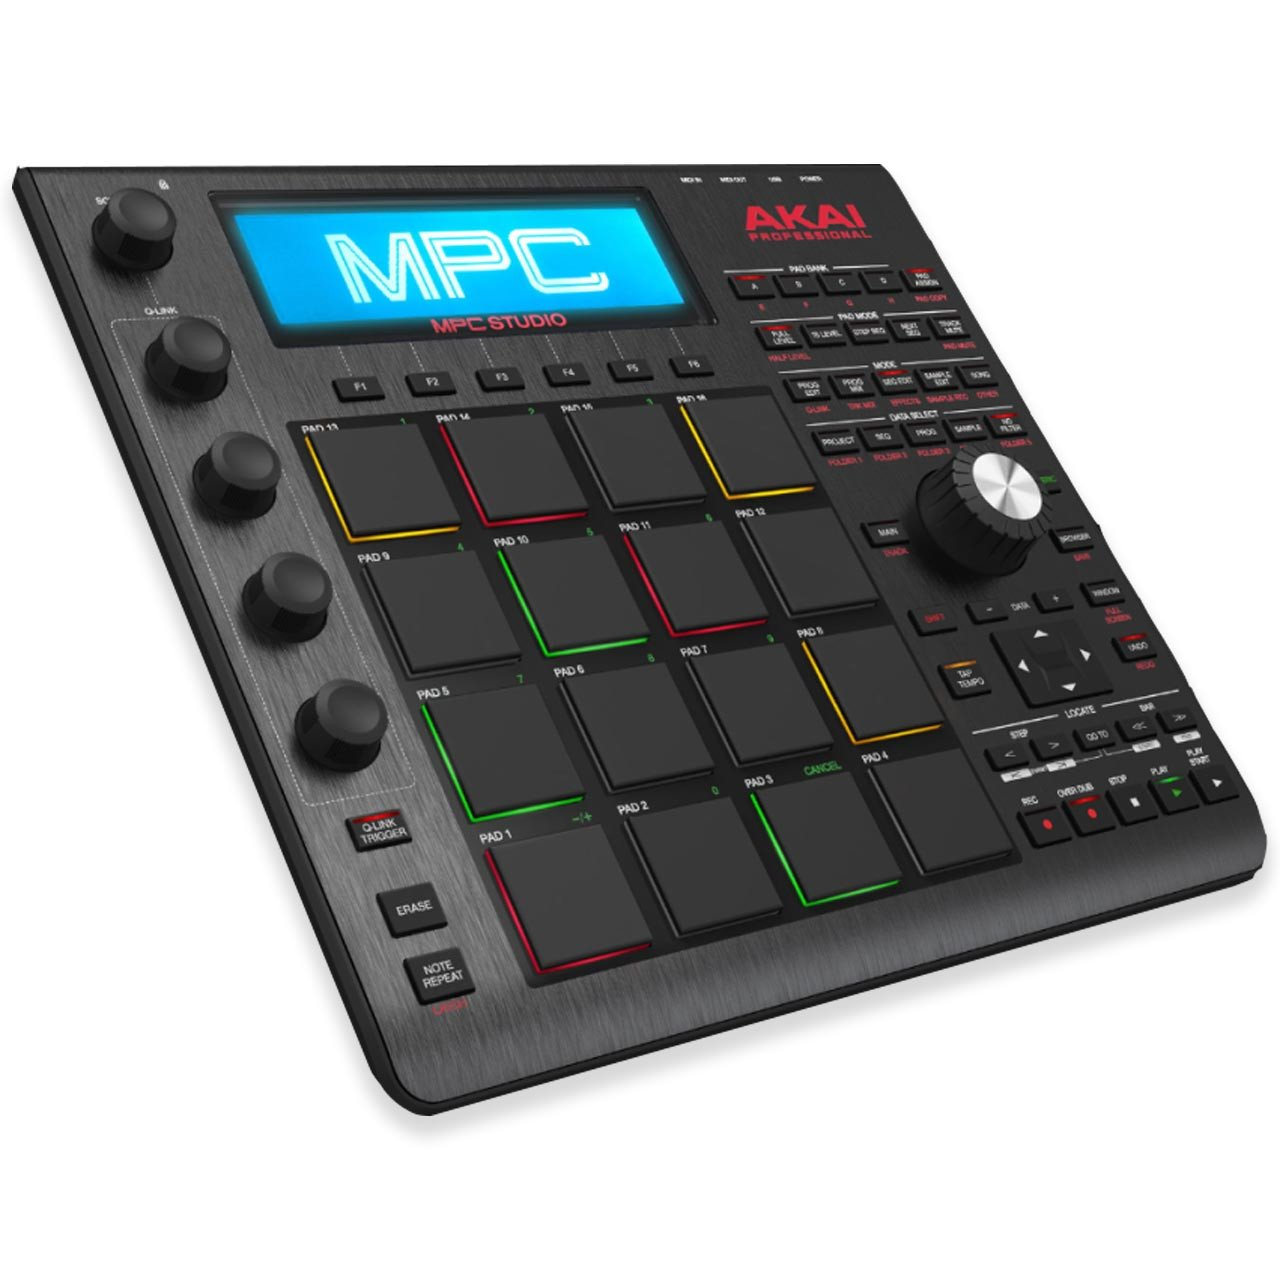 MIDI Controllers - Akai MPC Studio Music Production Controller - BLACK